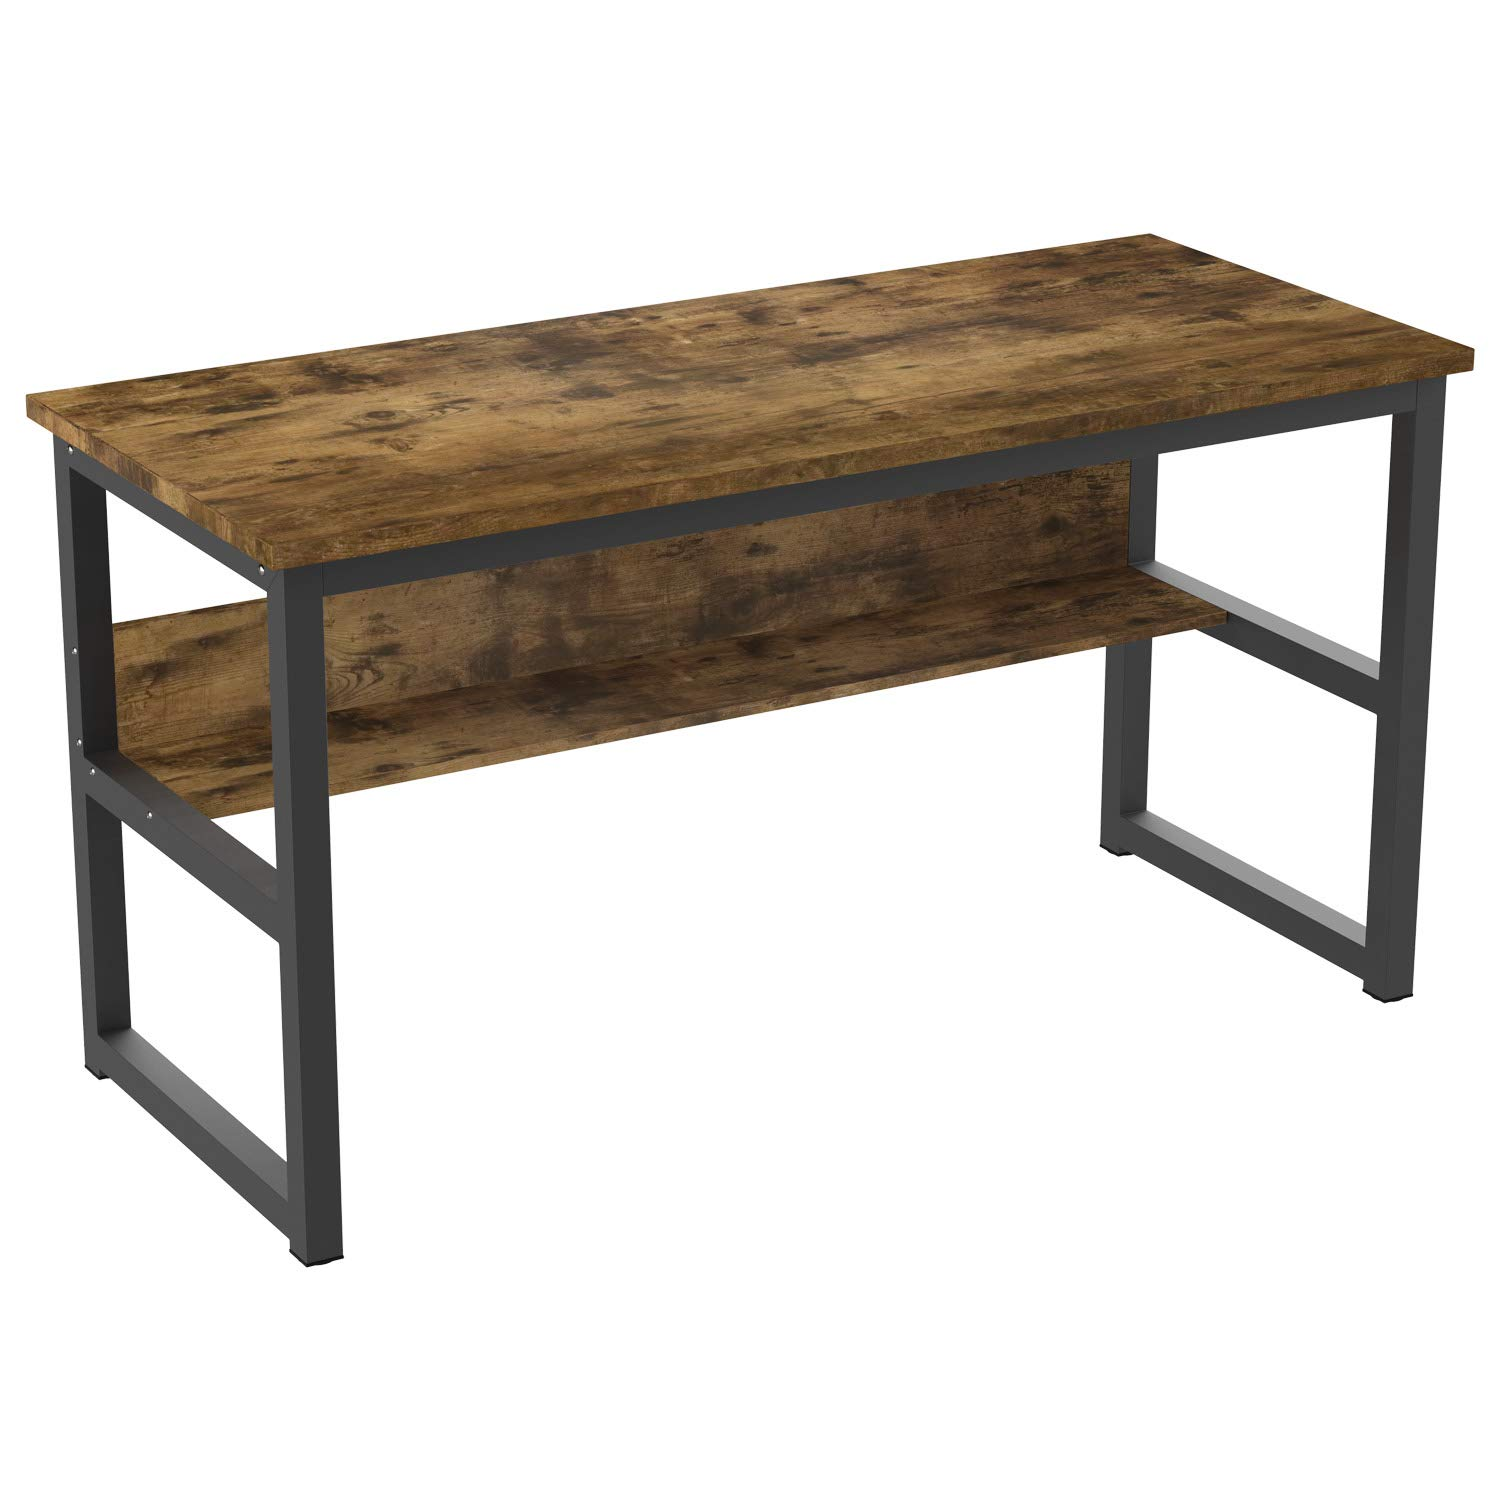 IRONCK Computer Desk 55'' with Bookshelf, Office Desk, Writing Desk, Wood and Metal Frame, Industrial Style, Study Table Workstation for Home Office Furniture by IRONCK